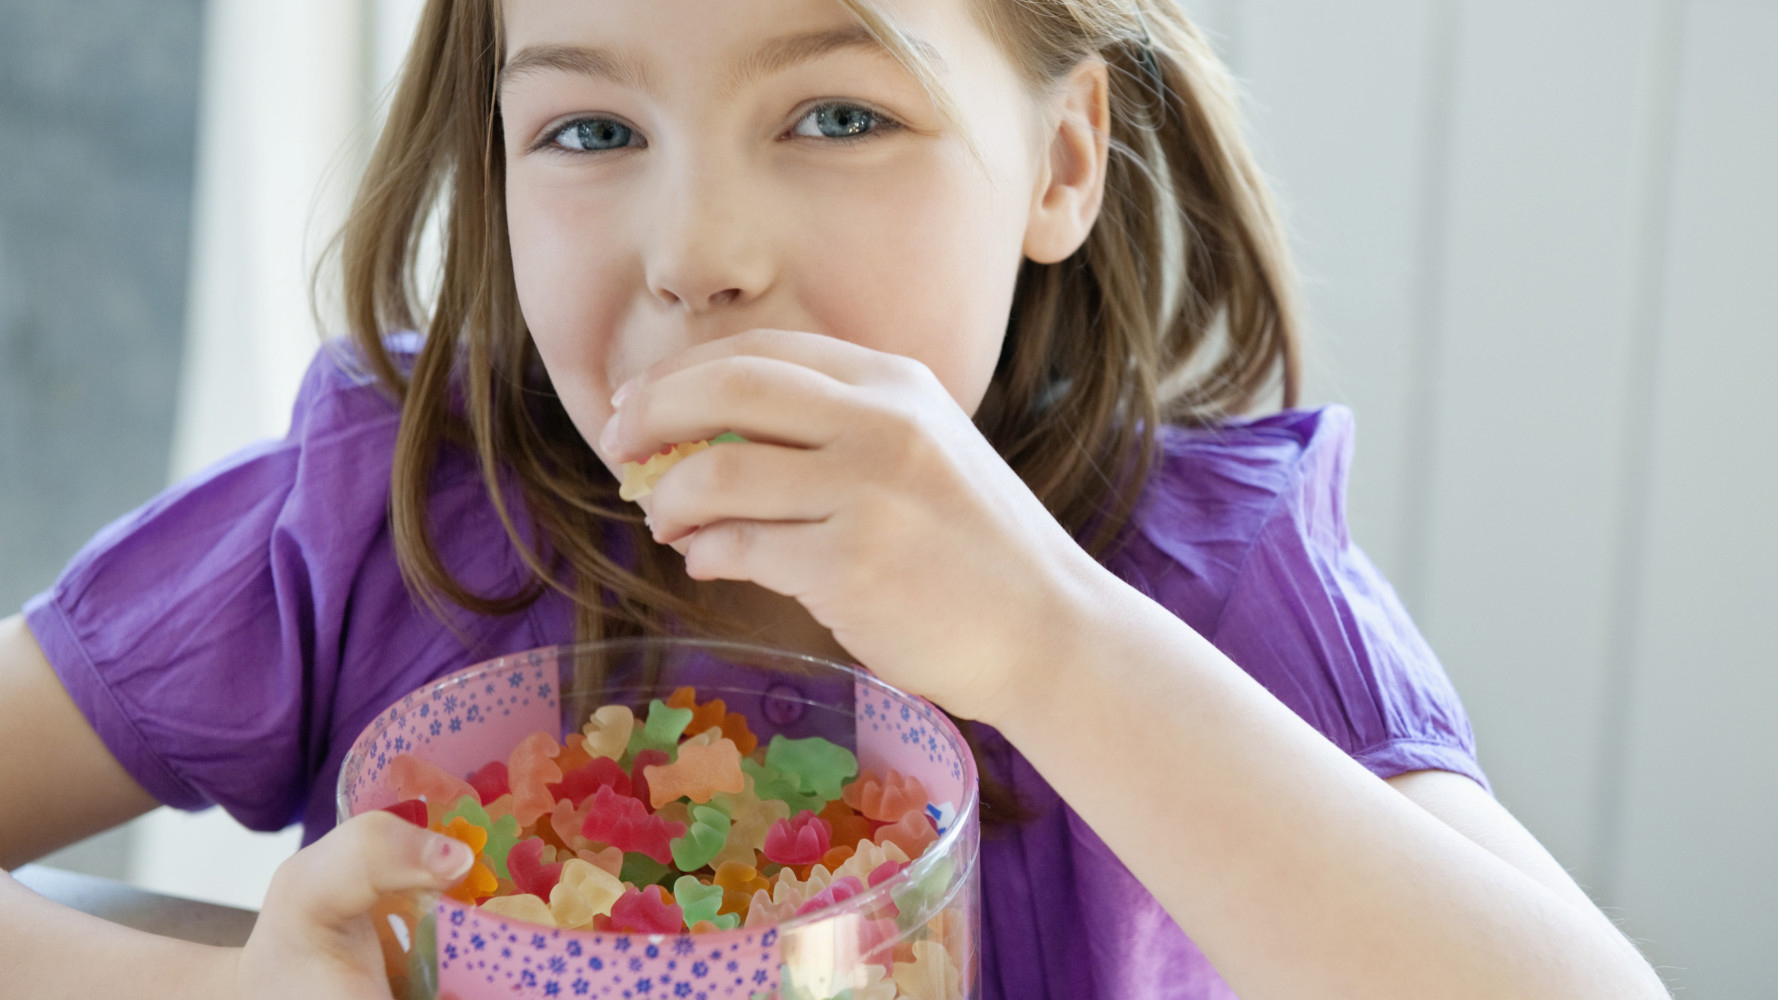 kids-snacks-found-to-have-harmful-additives-pure-living